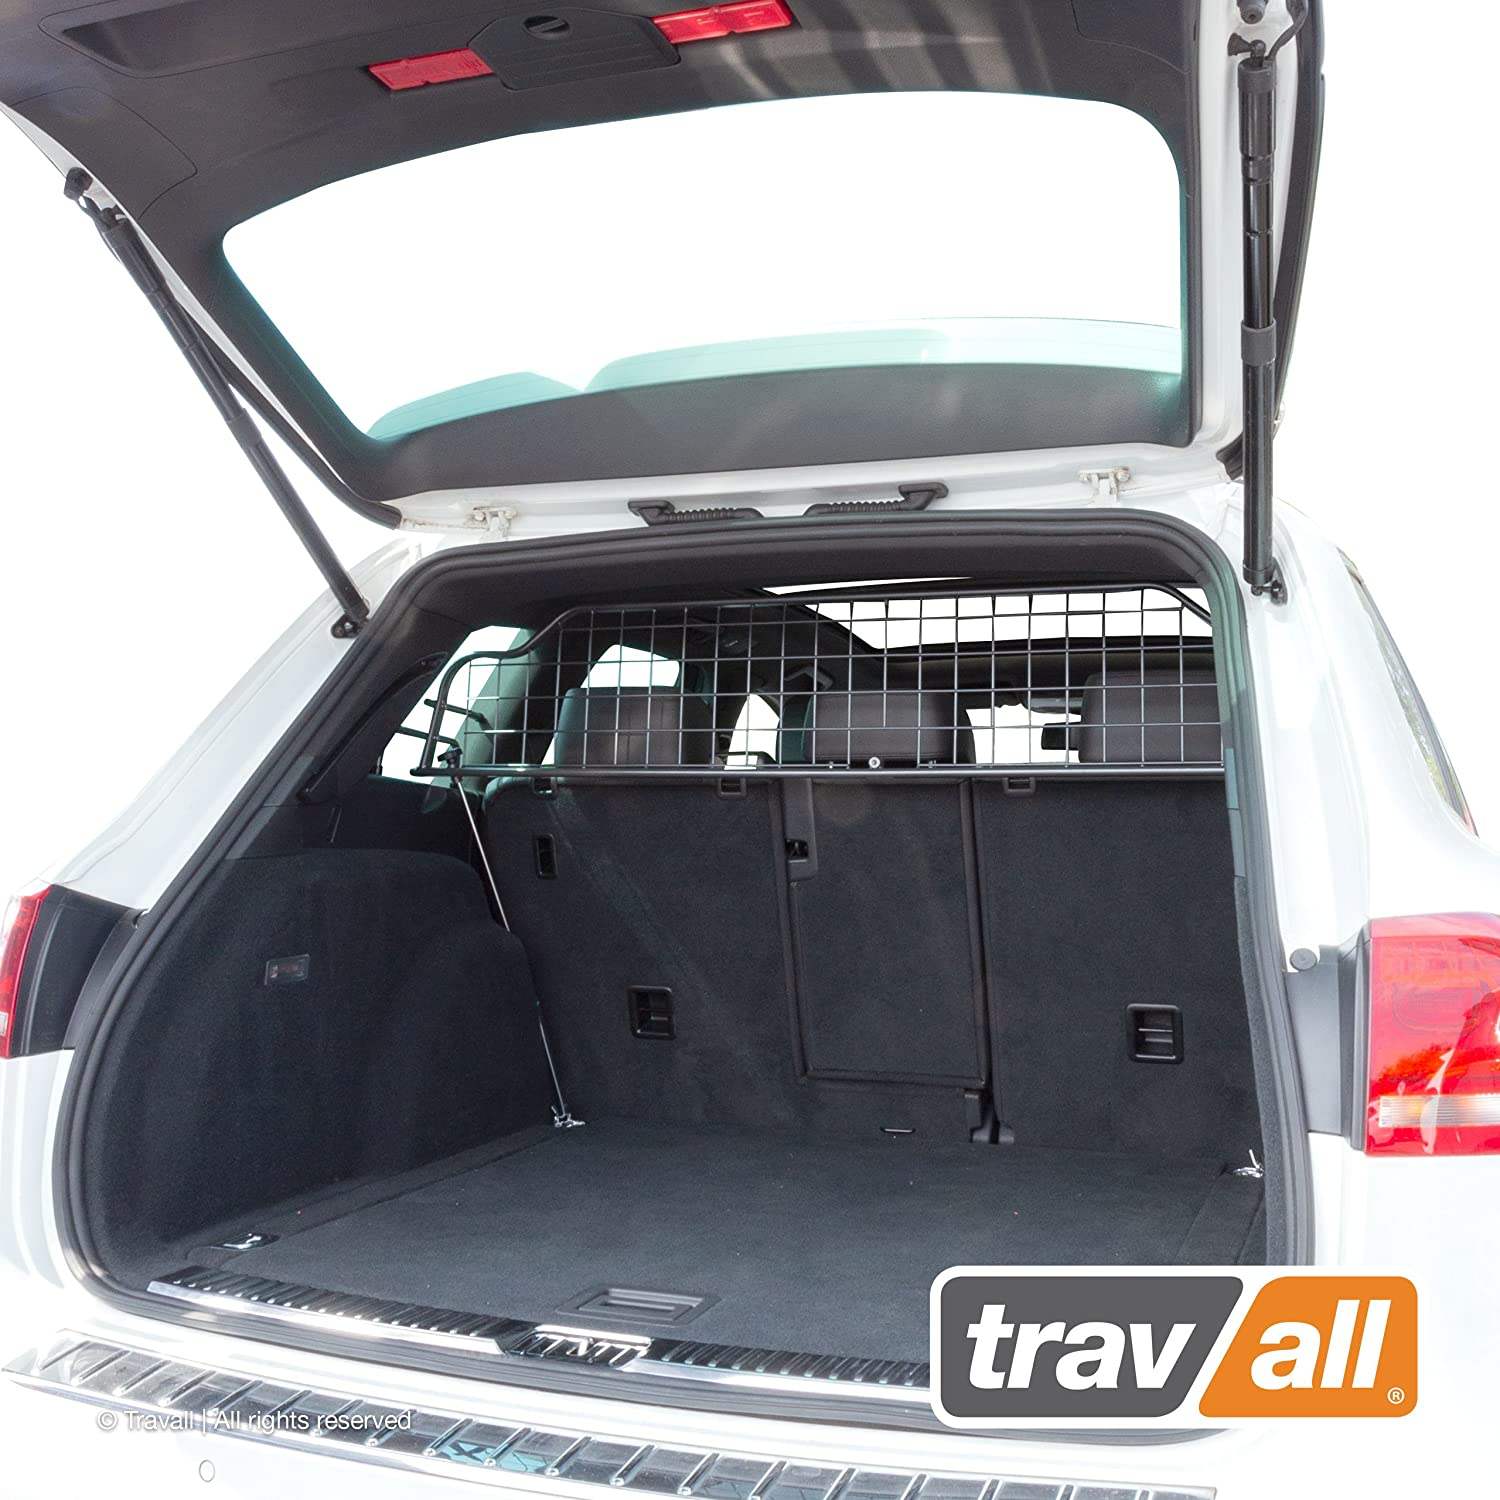 Travall Guard Compatible with Volkswagen Touareg 2010-2018 TDG1357 – Rattle-Free Steel Pet Barrier